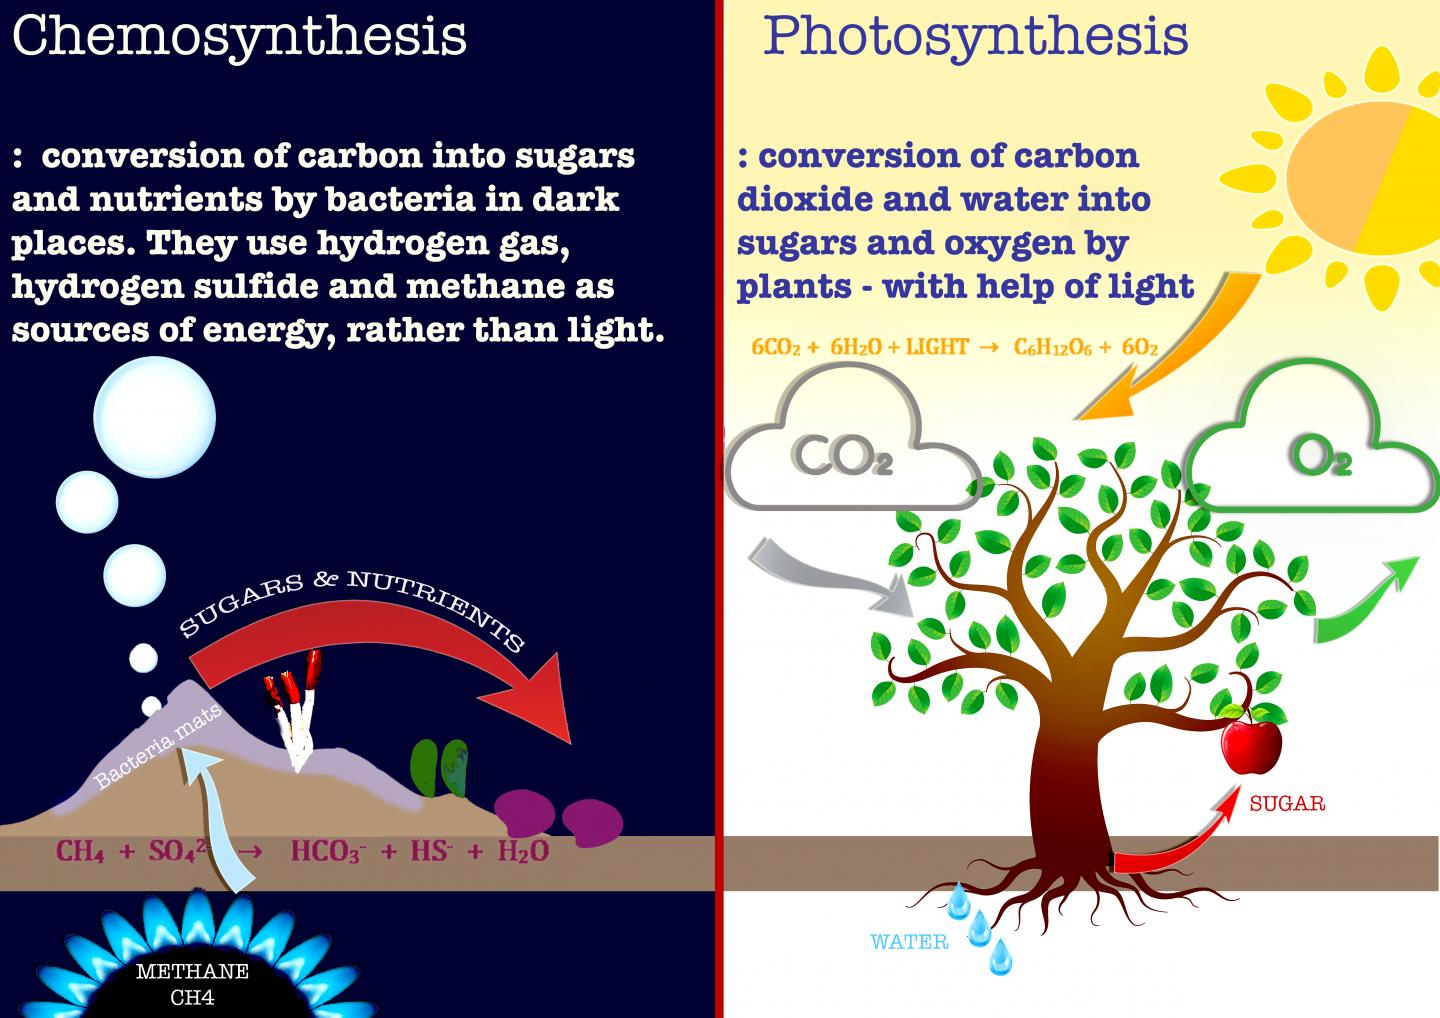 differences between chemosynthesis and